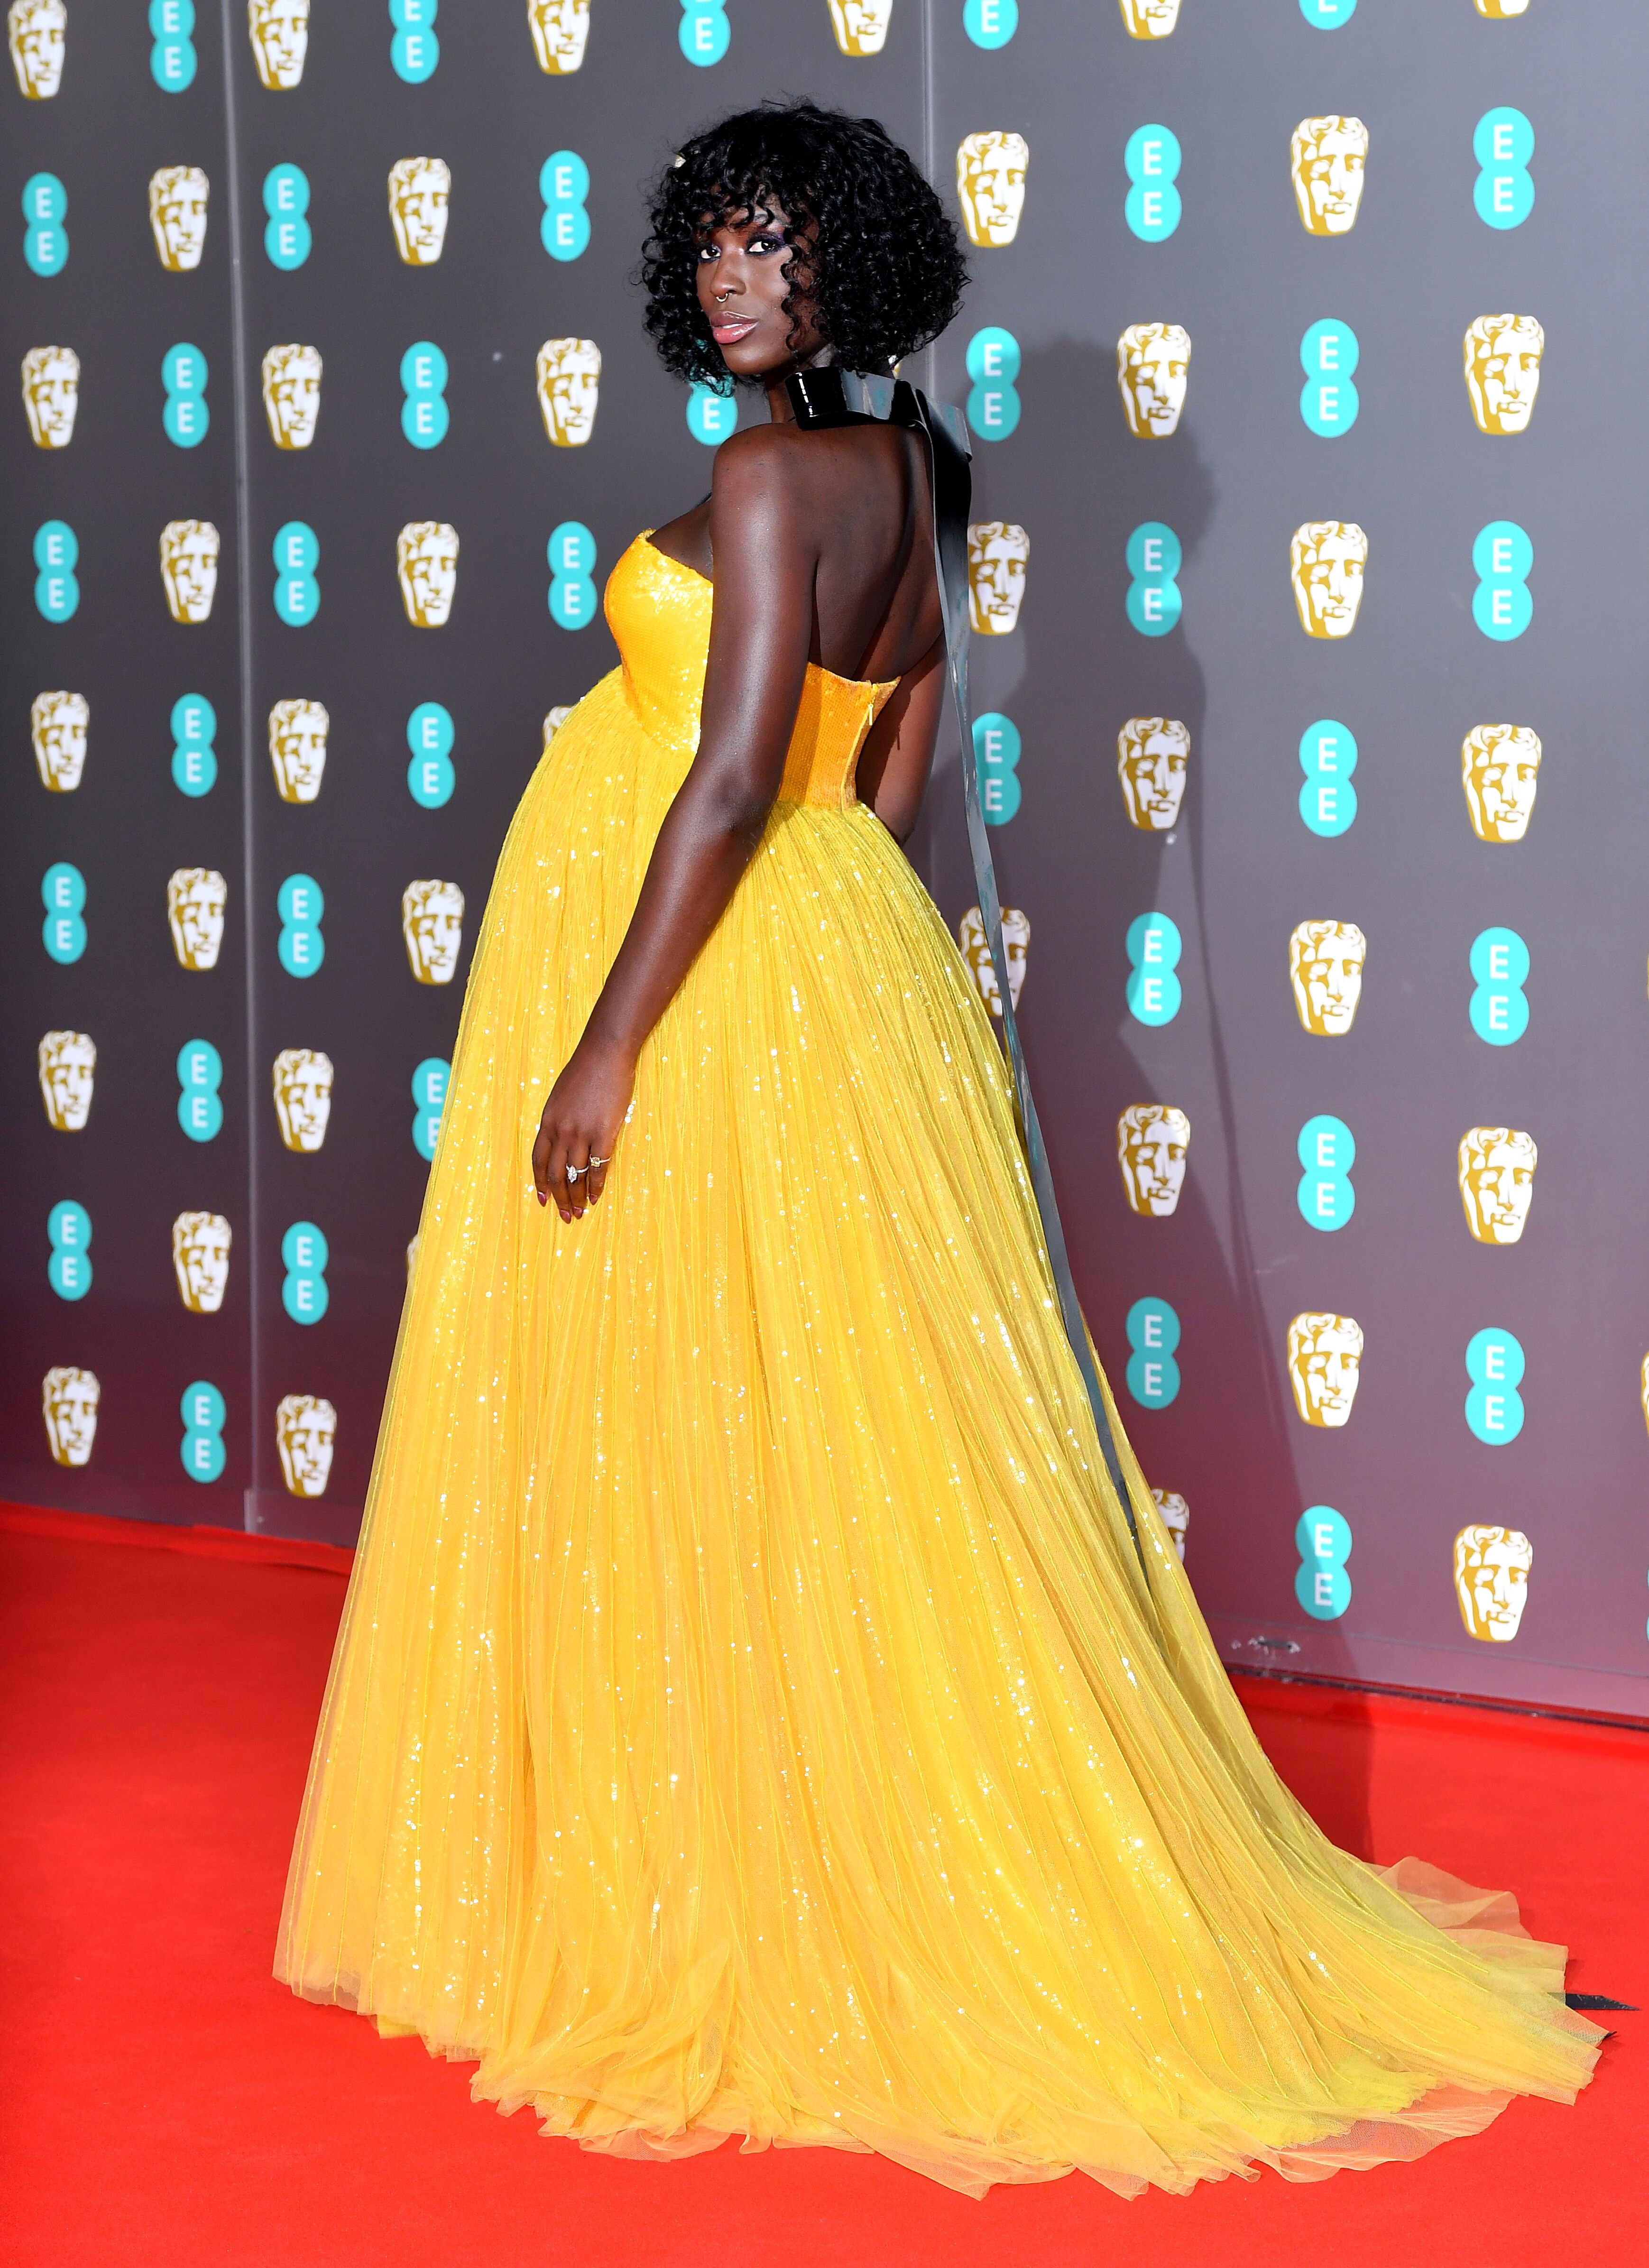 Jodie Turner-Smith attending the 73rd British Academy Film Awards held at the Royal Albert Hall, London. | Source: Getty Images